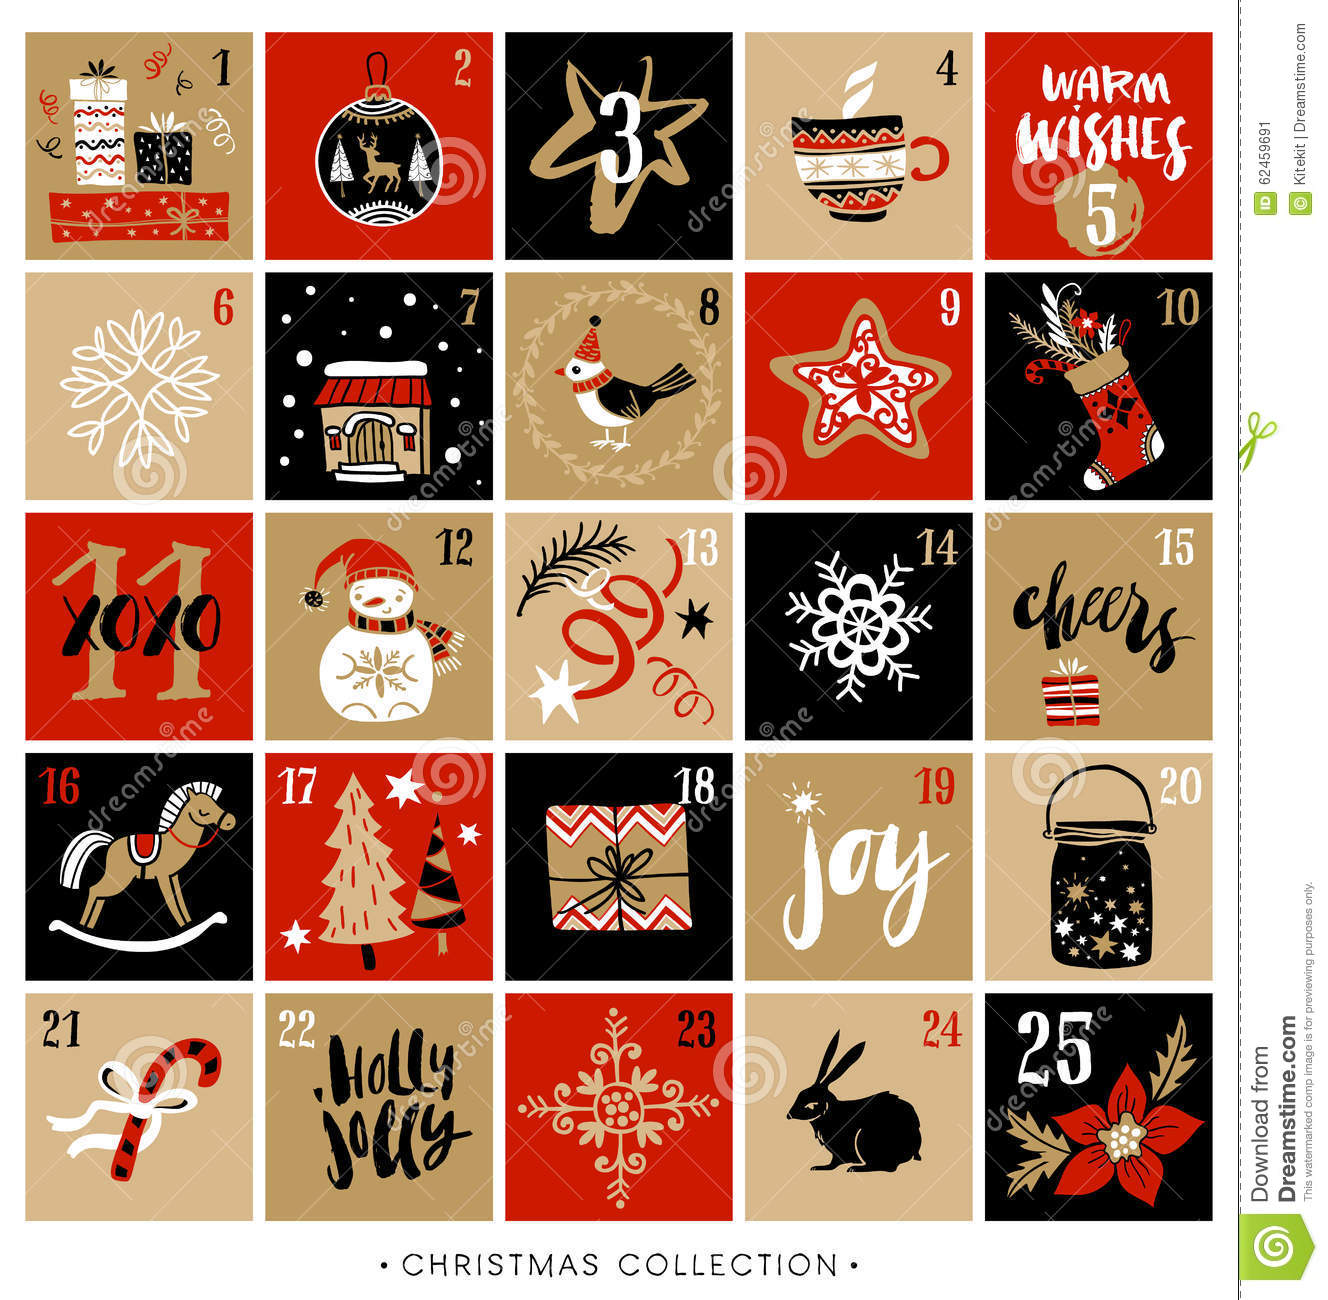 Typography Advent Calendar : Christmas advent calendar hand drawn design elements